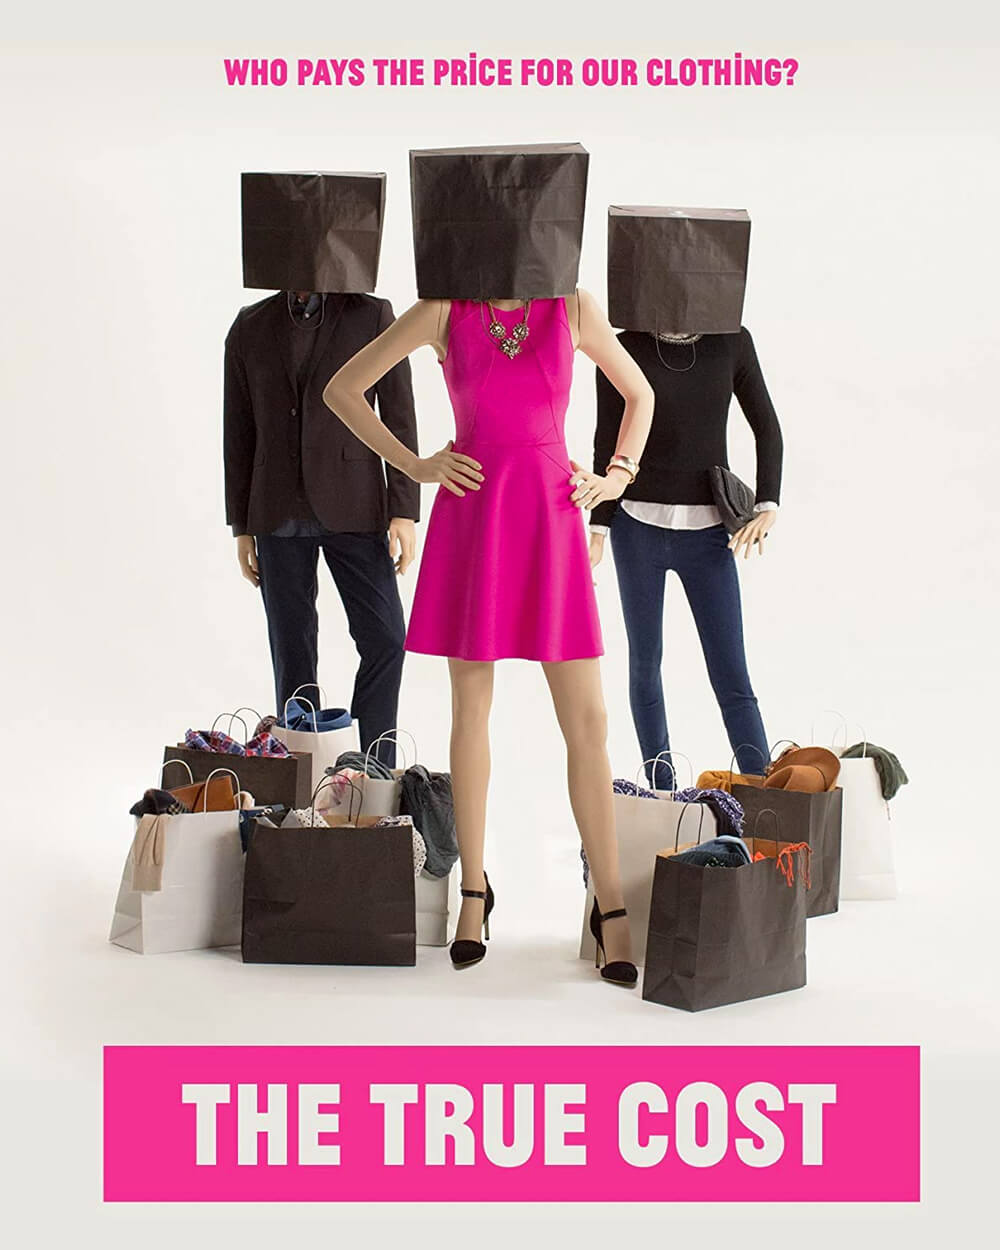 The True Cost documentary about sustainable fashion